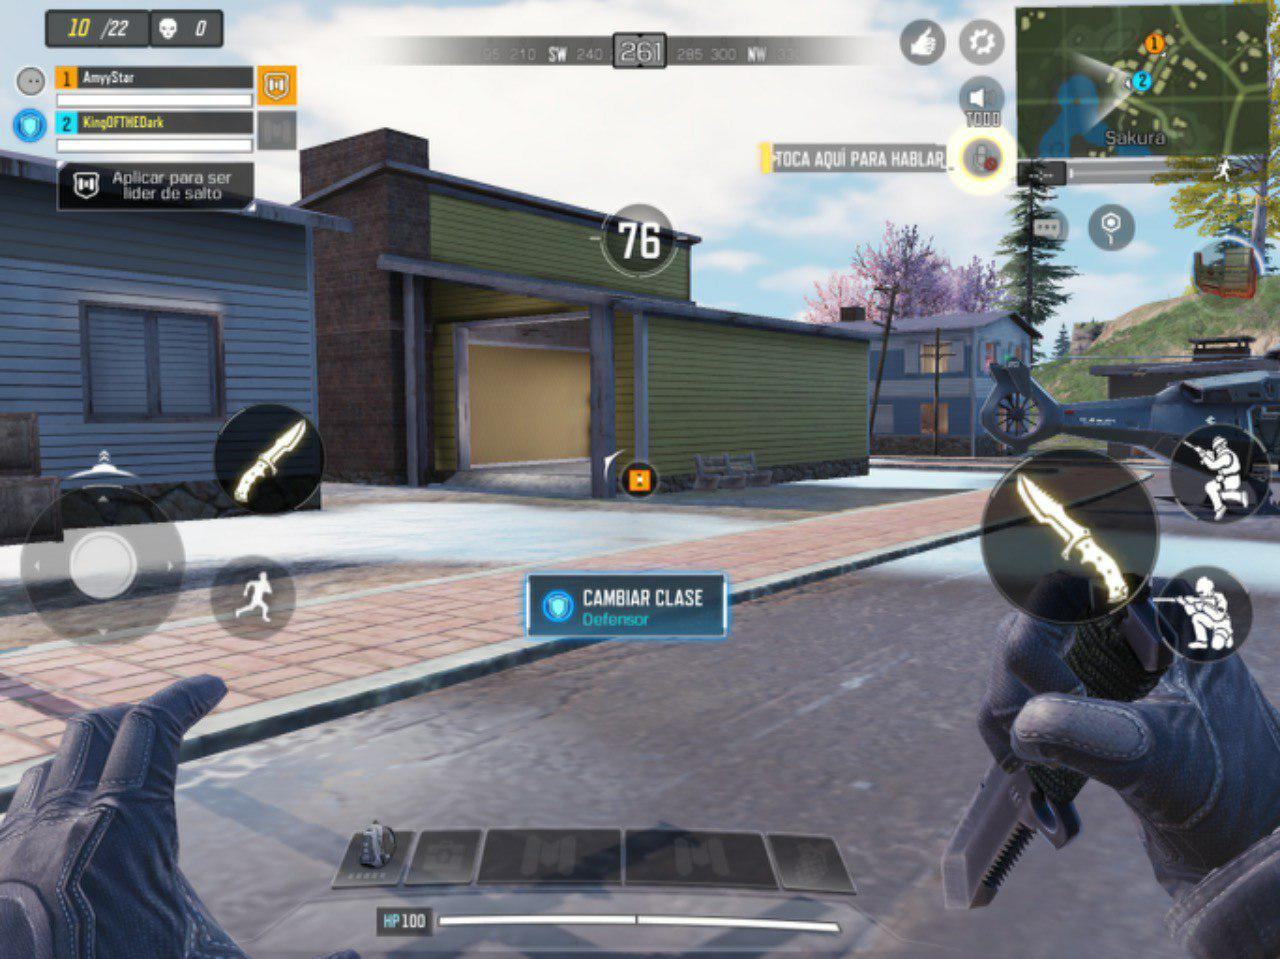 The knife, knife of the game Call of Duty Mobile